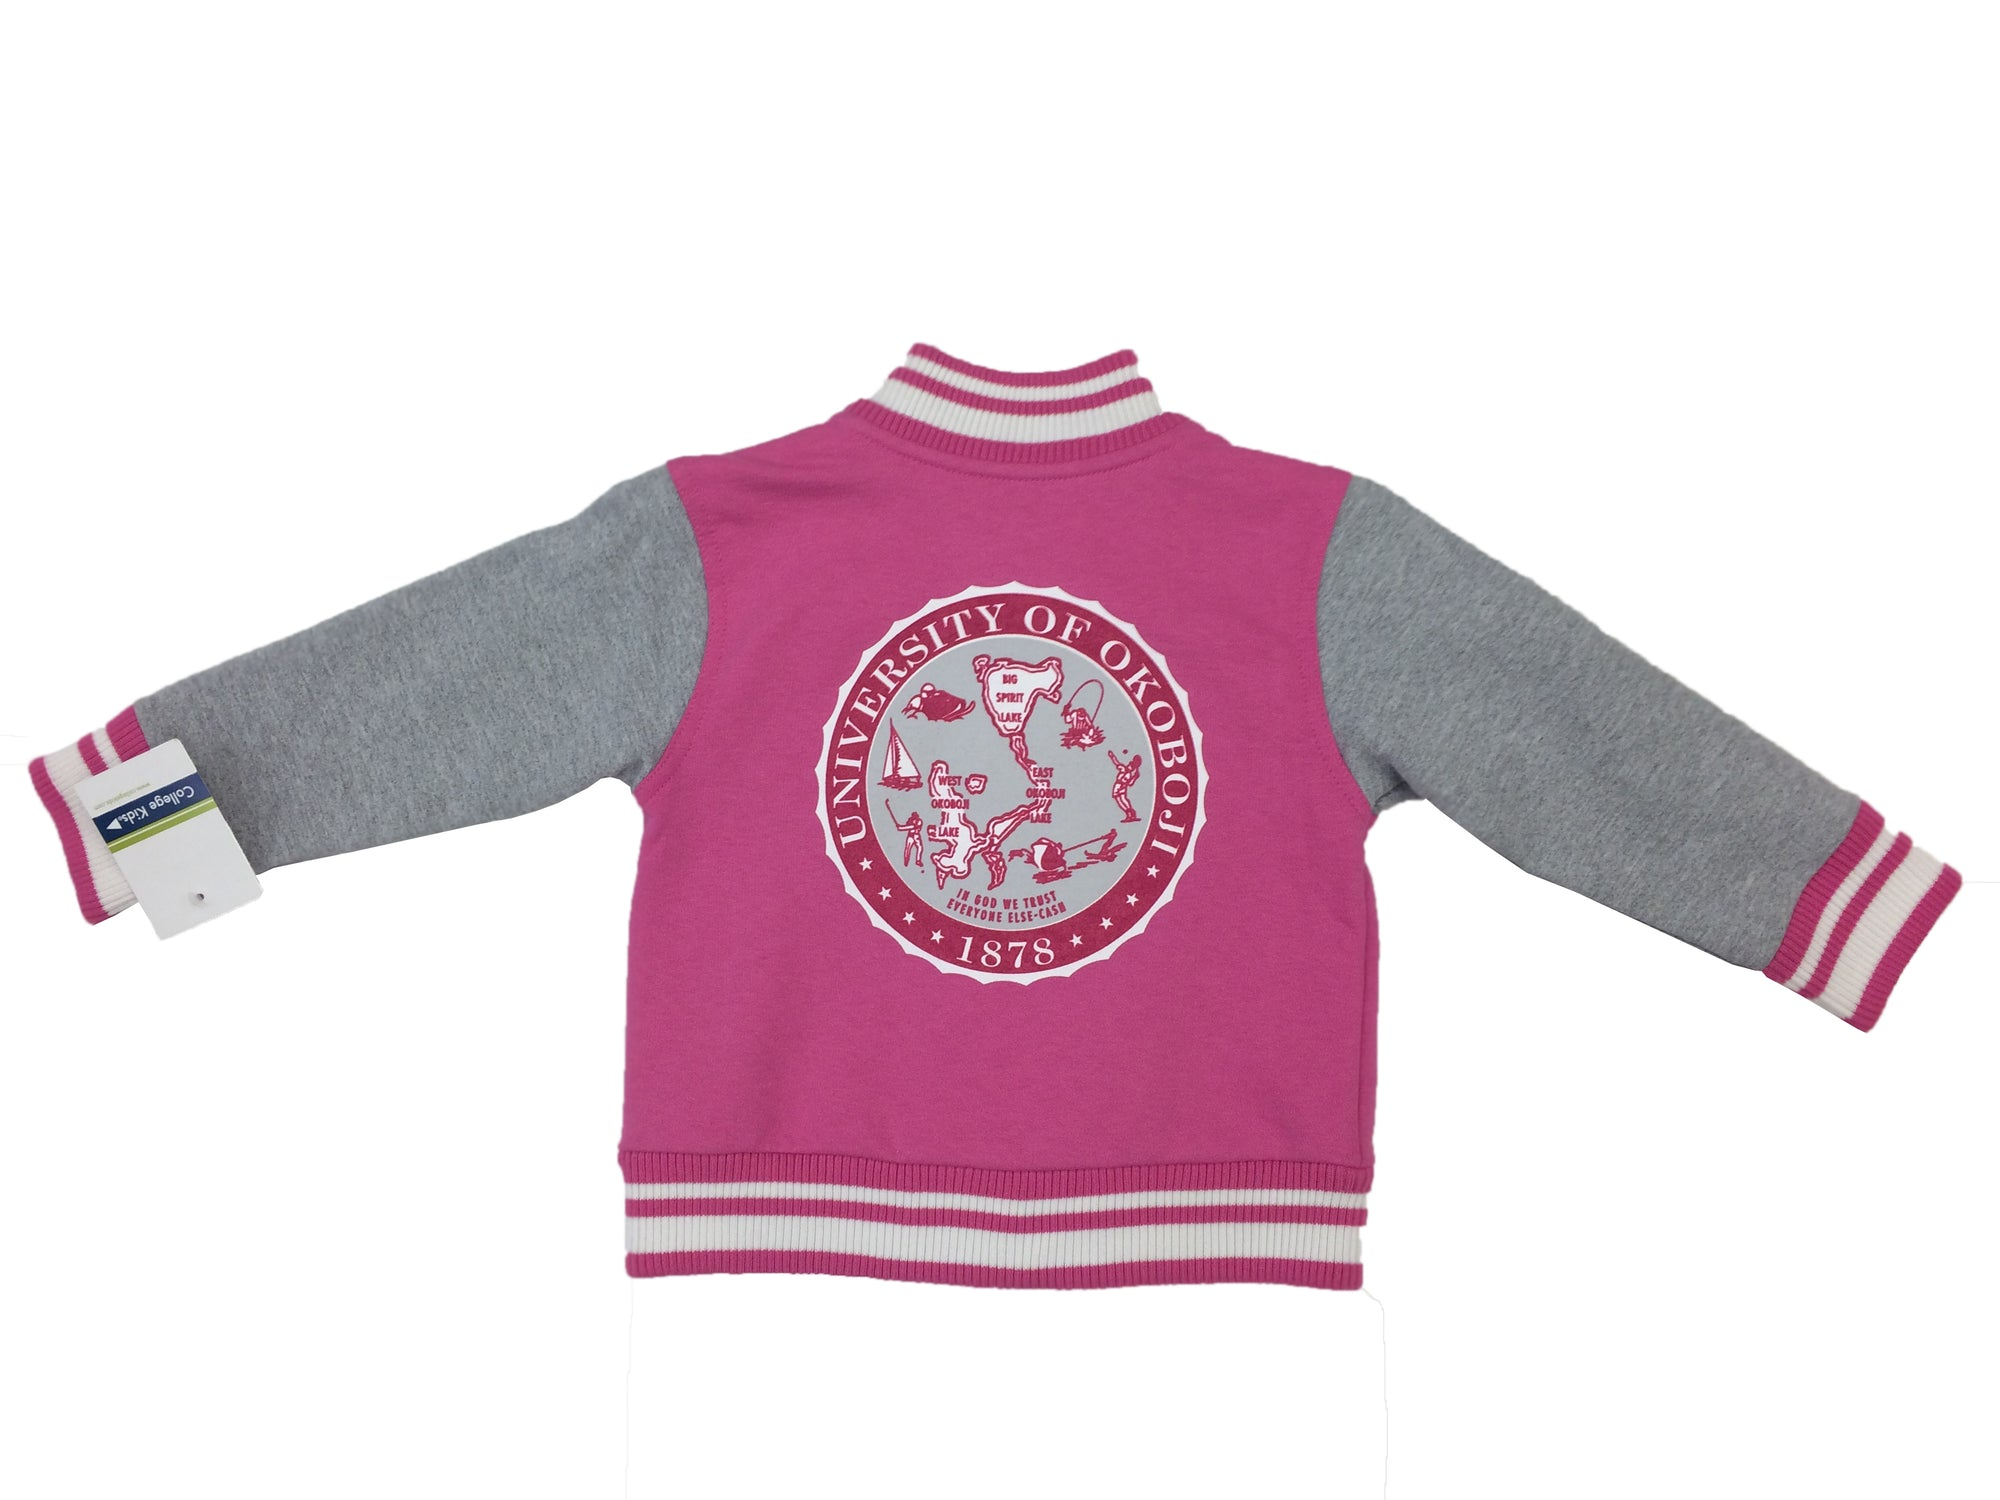 Toddler U of O Letterman Jacket - Pink